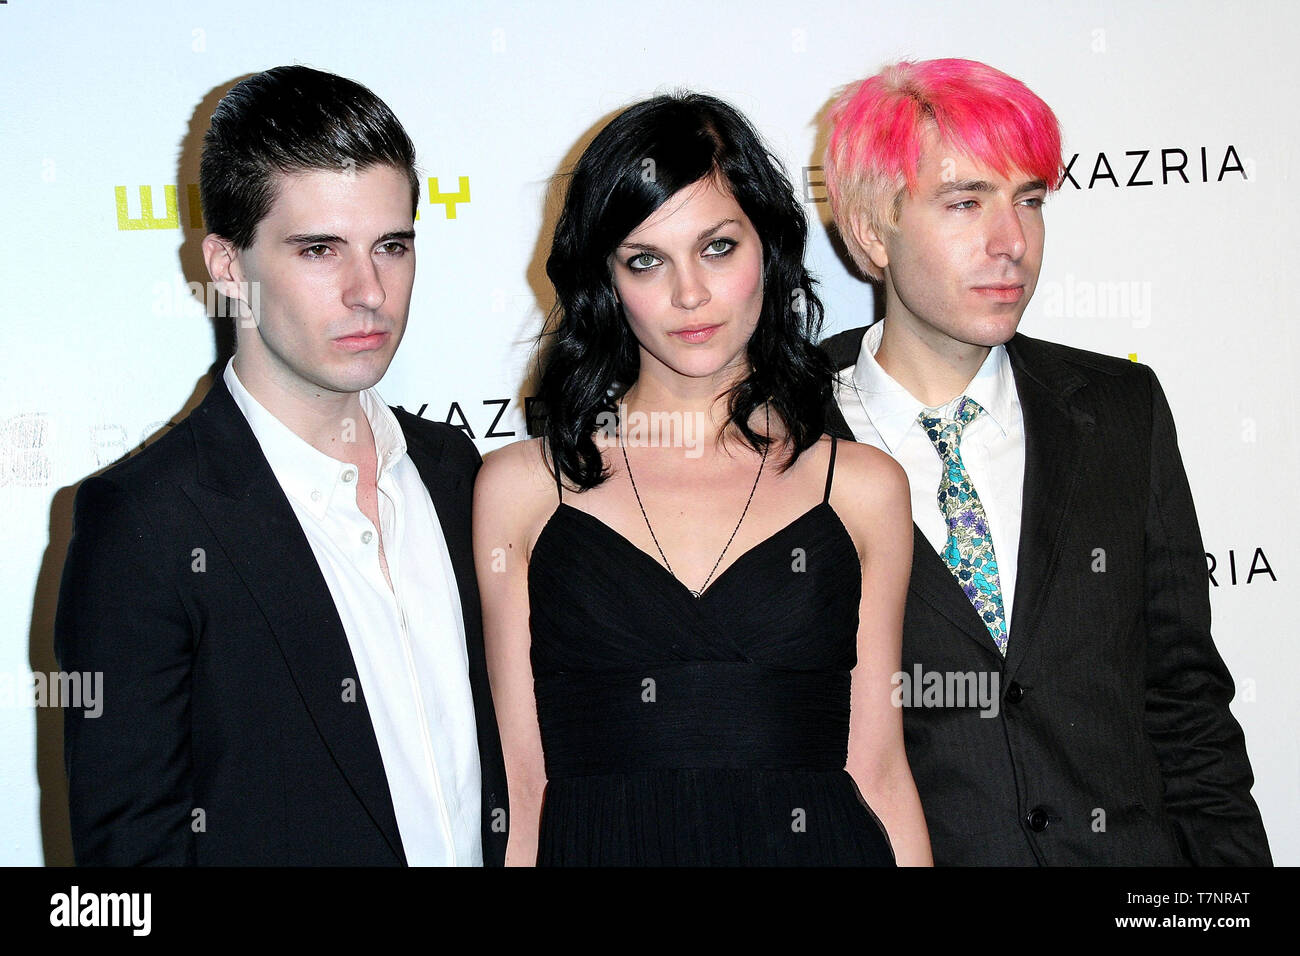 New York, USA. 6 June, 2007. Greg. K, Leigh Lezark, Geordon Nicol at the Fifth Annual Art Party Celebrating The Whitney Museum Of American Art at The Whitney Museum Of American Art. Credit: Steve Mack/Alamy - Stock Image